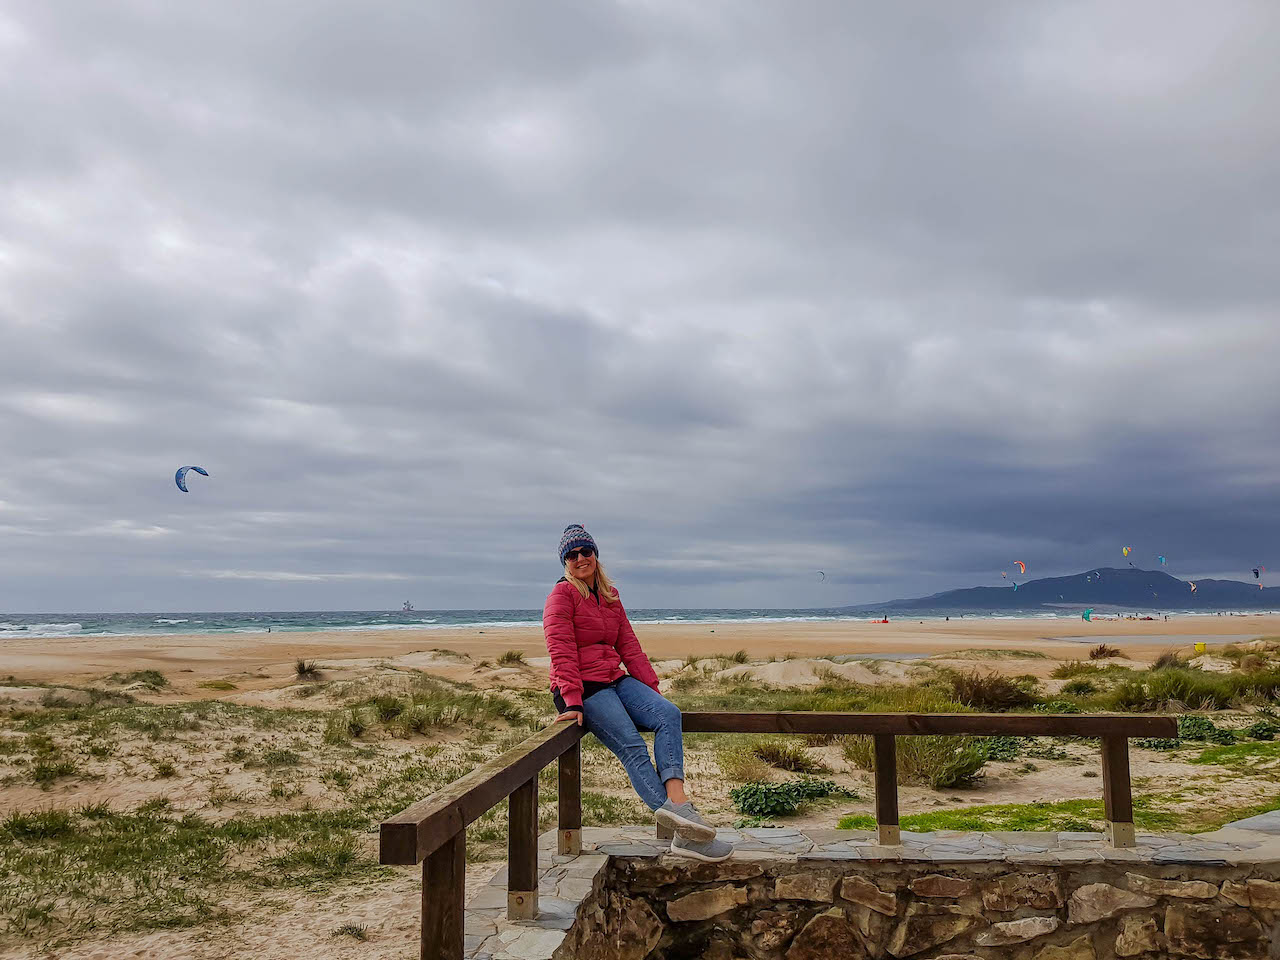 Sarah am Strand in Tarifa.